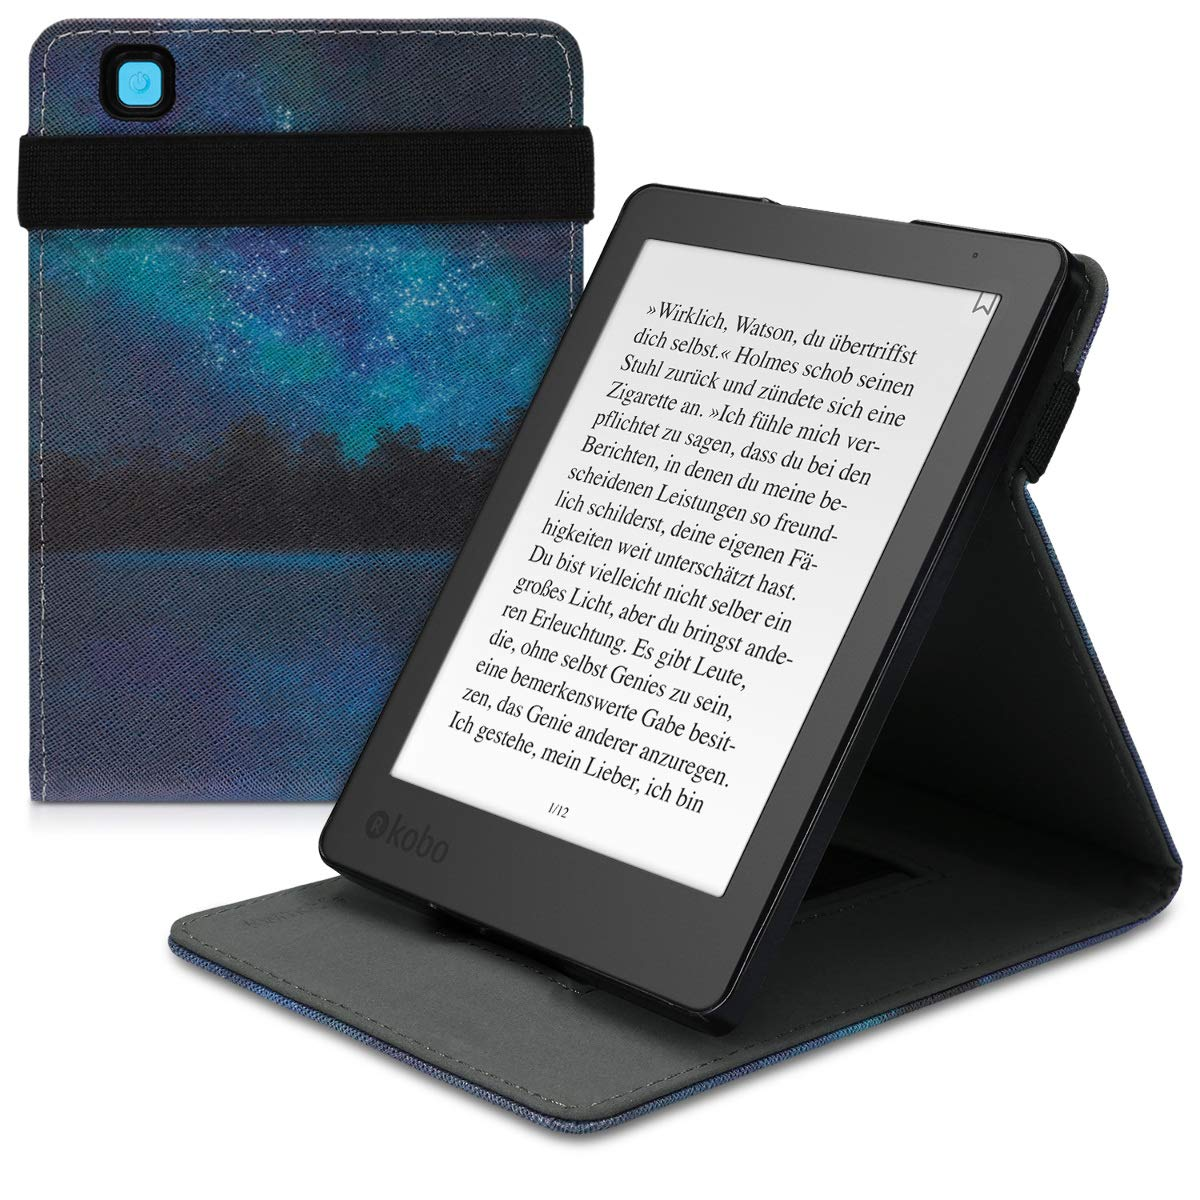 Kobo Aura H20 2nd Edition 2017 Funda,Mama Mouth case Funda Carcasa de cuero con soporte ajustable Modo para 6.8 Kobo Aura H20 2nd Edition 2017 Release,Stained Glass